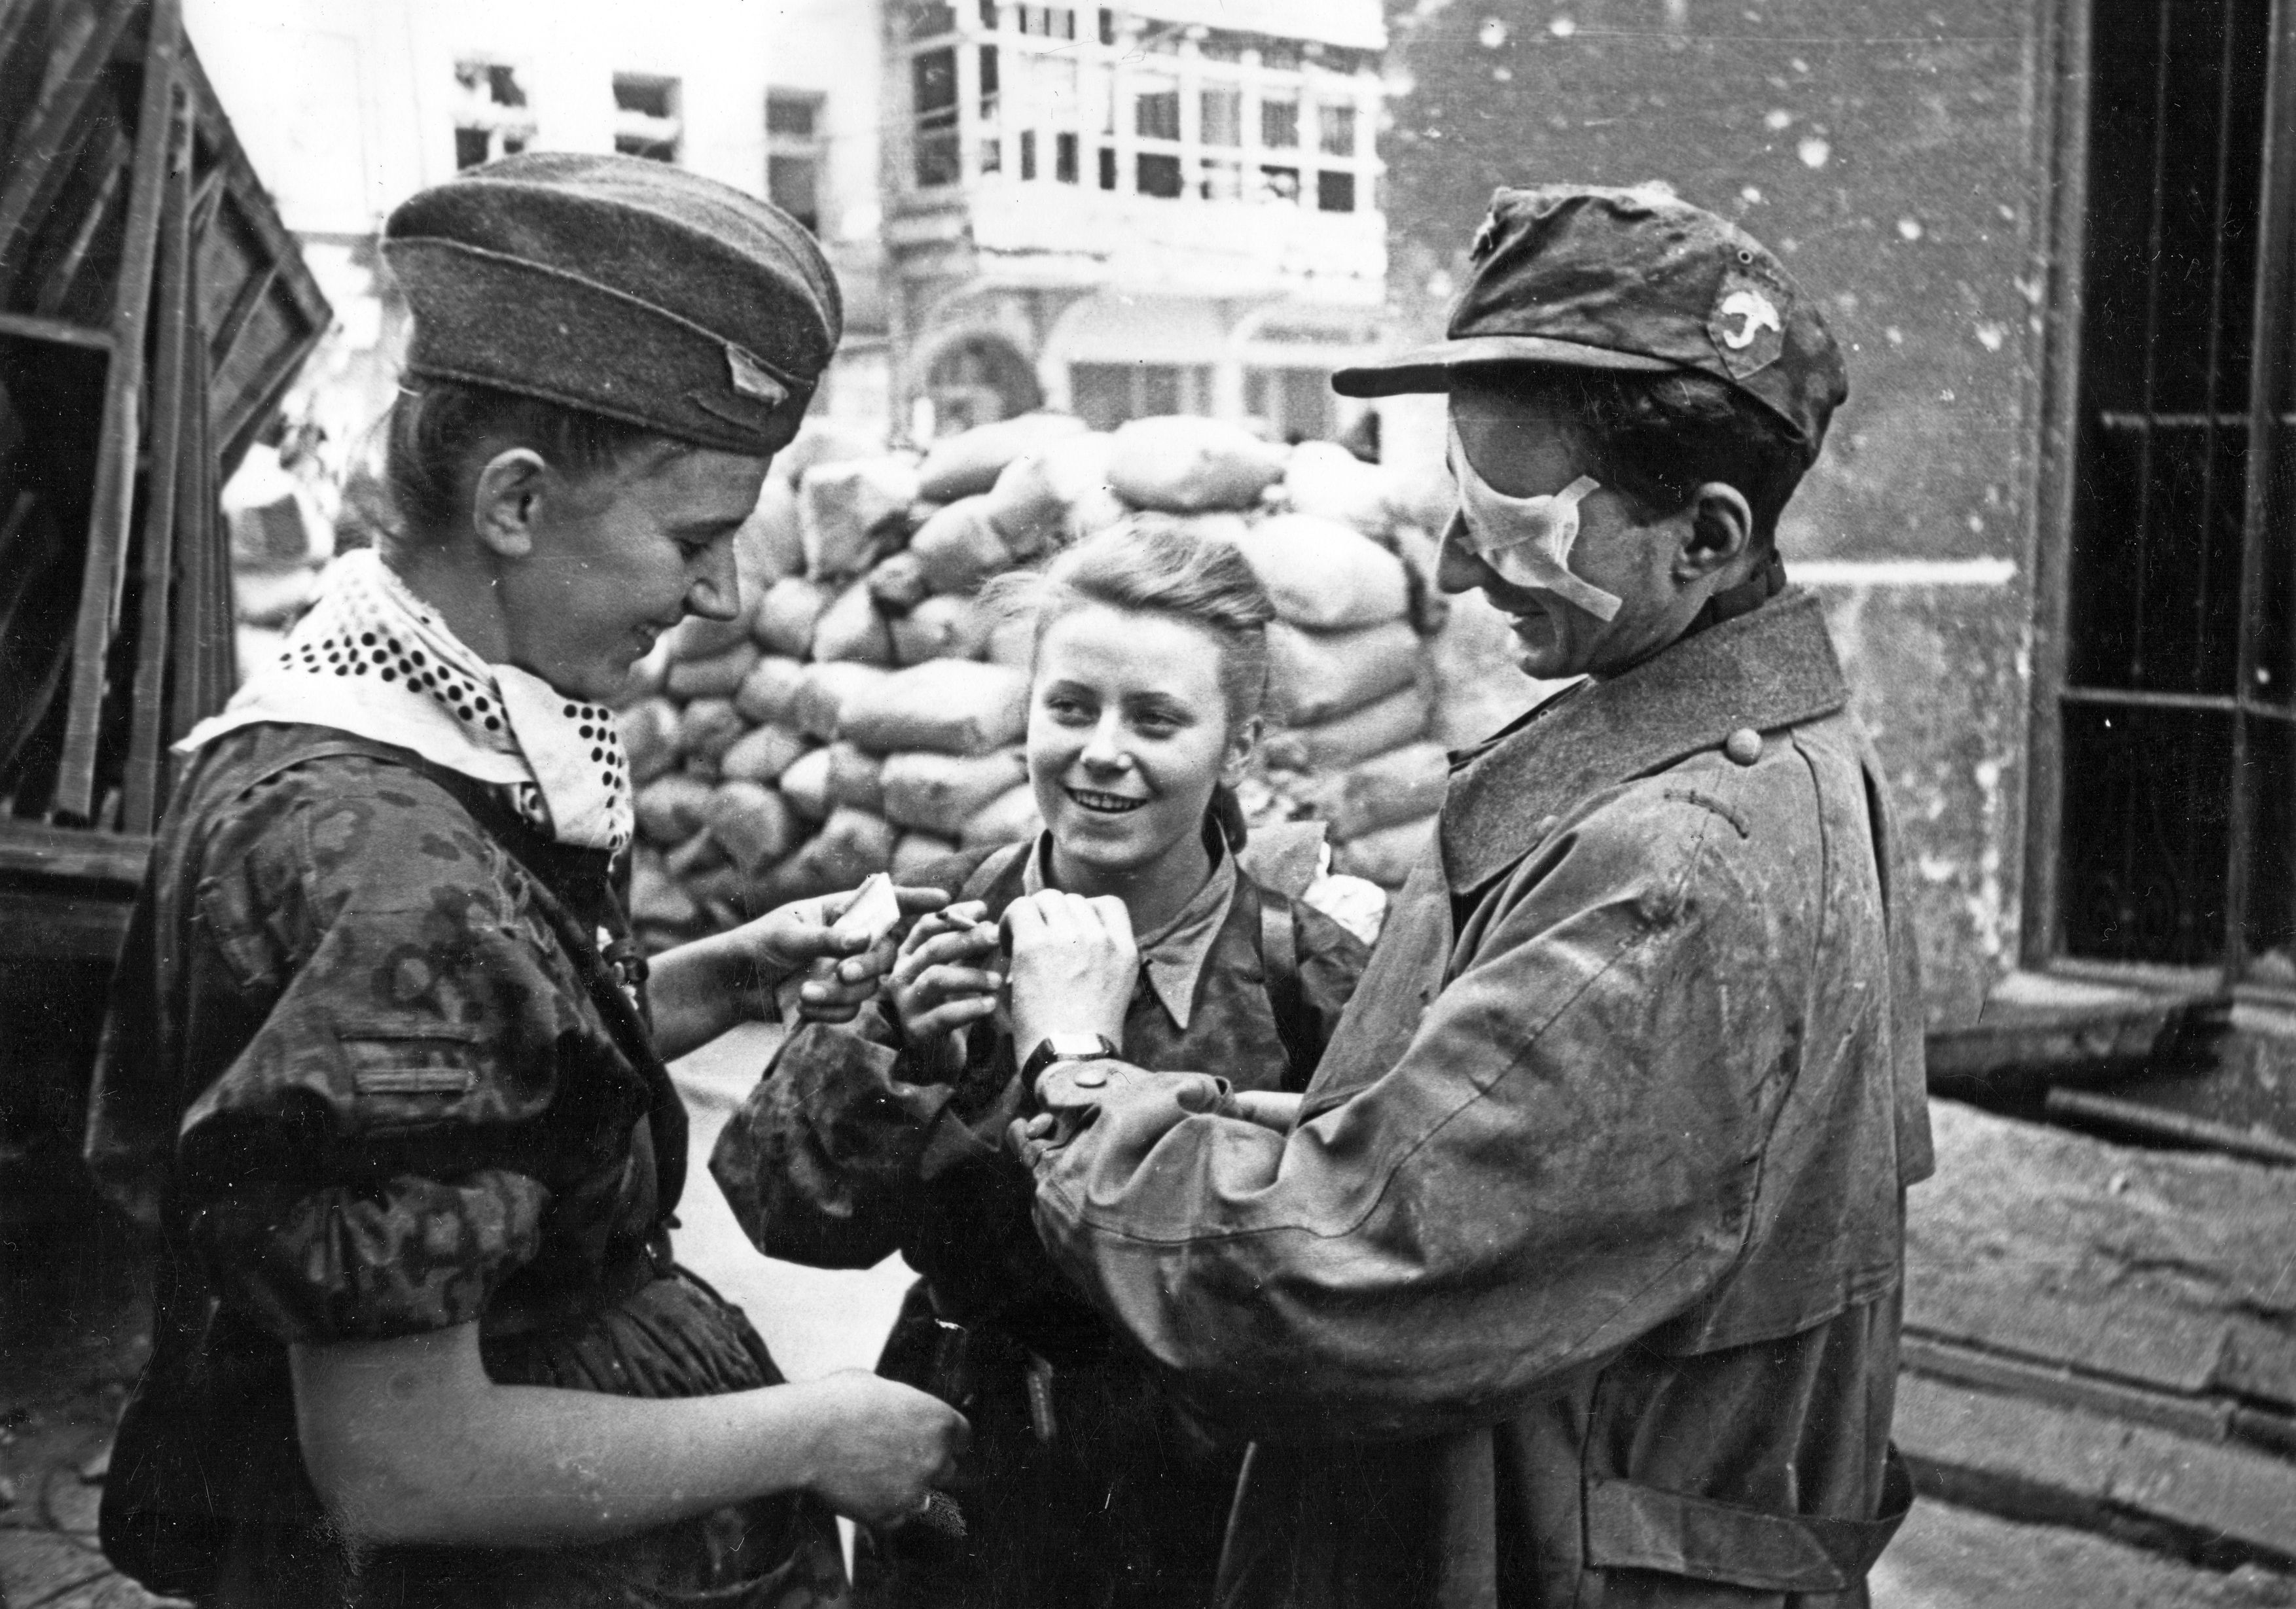 https://i2.wp.com/upload.wikimedia.org/wikipedia/commons/8/8e/Warsaw_Uprising_-_Soldiers_from_Parasol_on_Warecka_Street.jpg